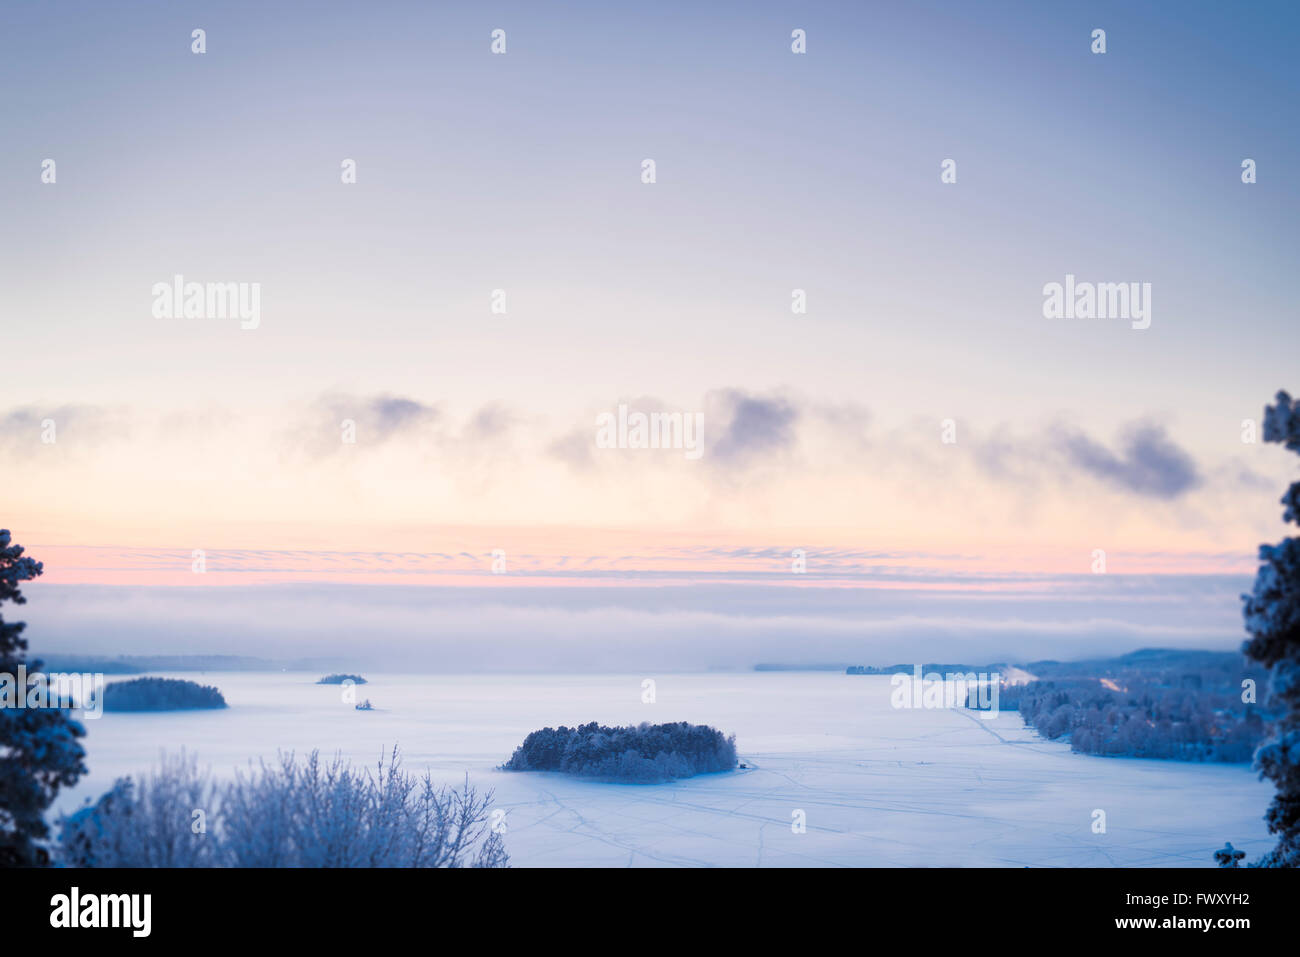 Finland, Pirkanmaa, Tampere, Landscape with frozen lake at dusk Stock Photo